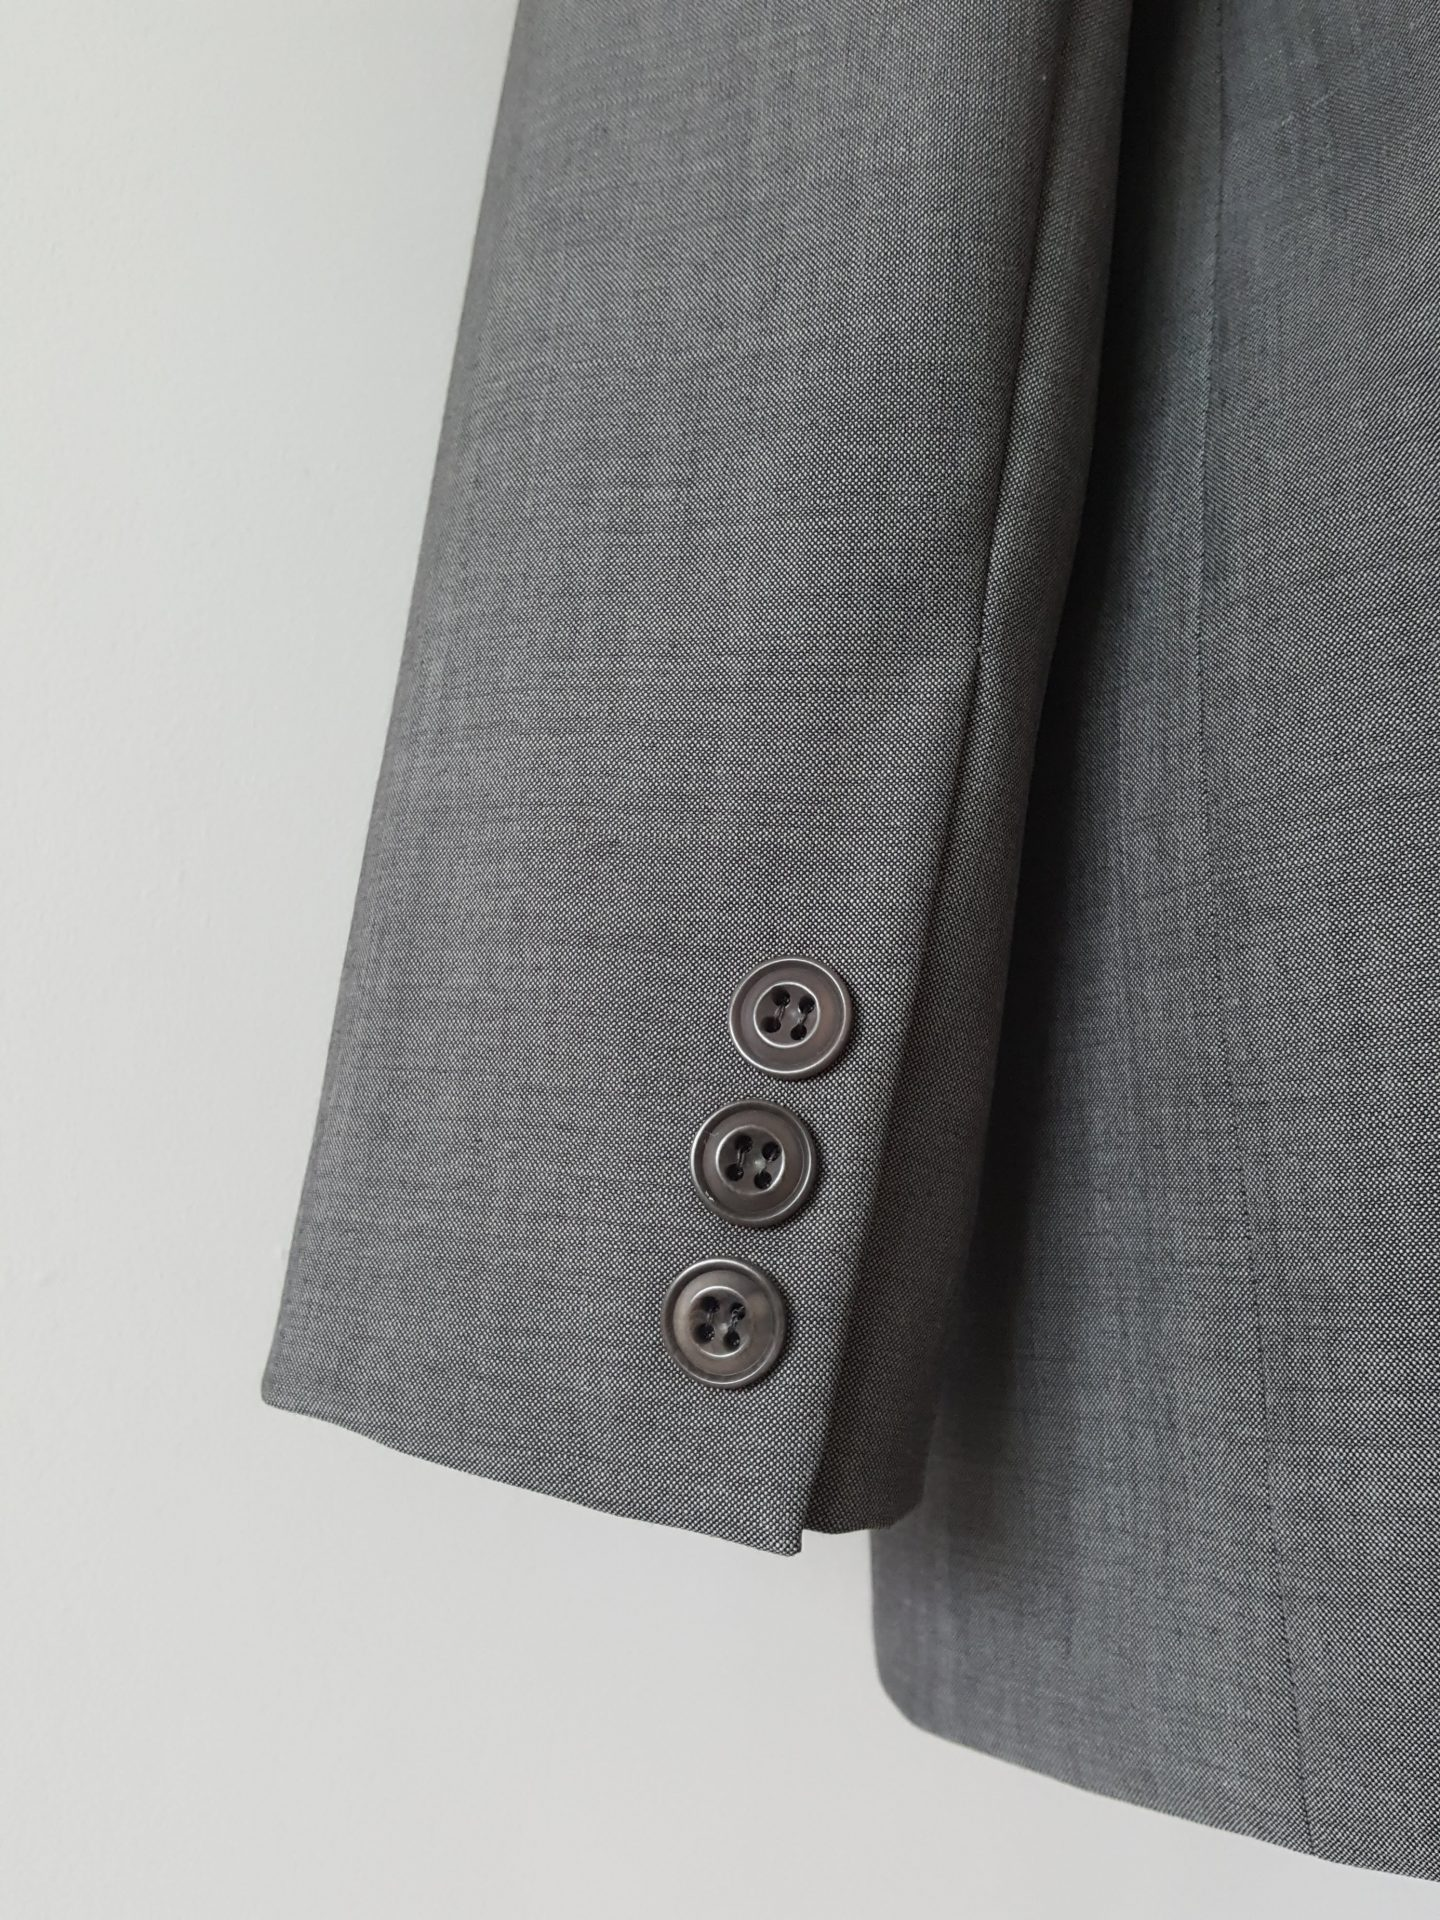 Sleeve vent detail of grey boyfriend blazer